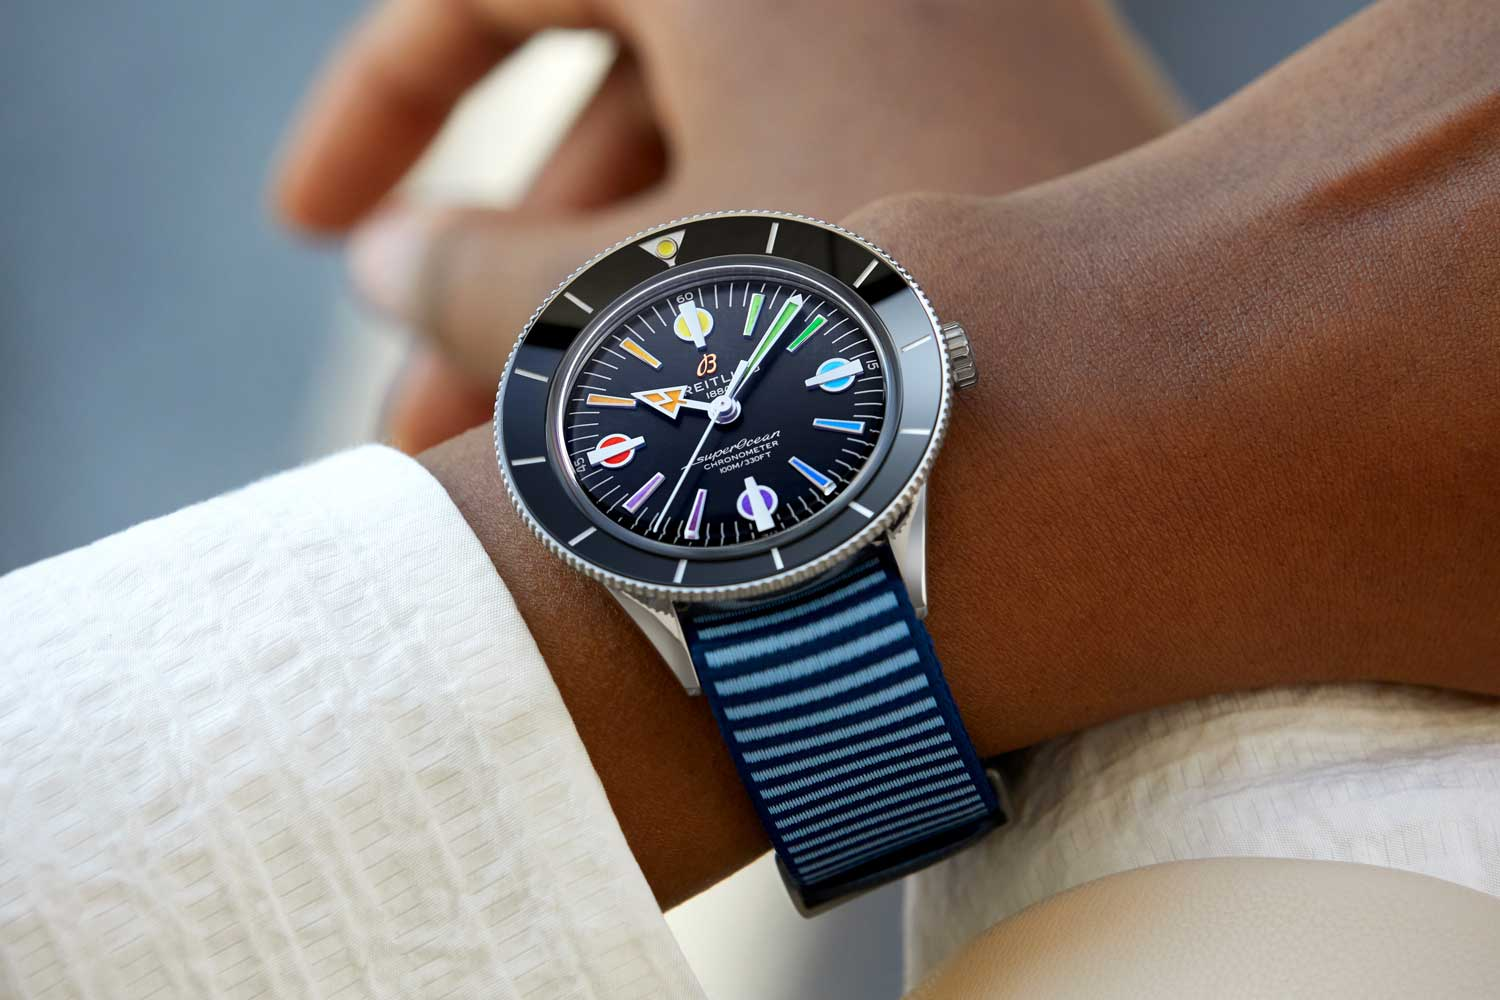 Superocean Heritage '57 Limited Edition with a light blue Outerknown ECONYL yarn NATO strap